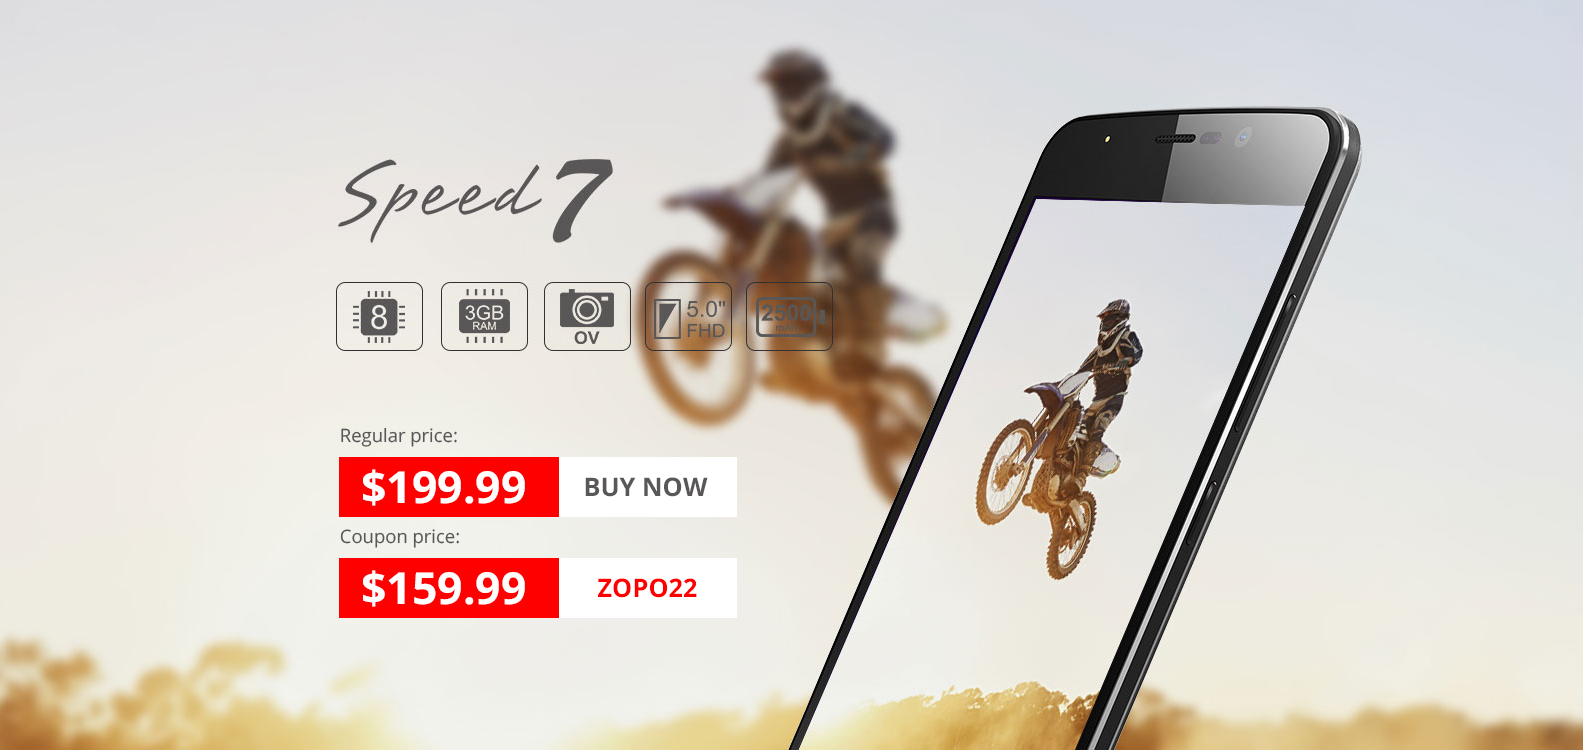 Zopo Speed 7 and 7 Plus Promotion from Everbuying 1